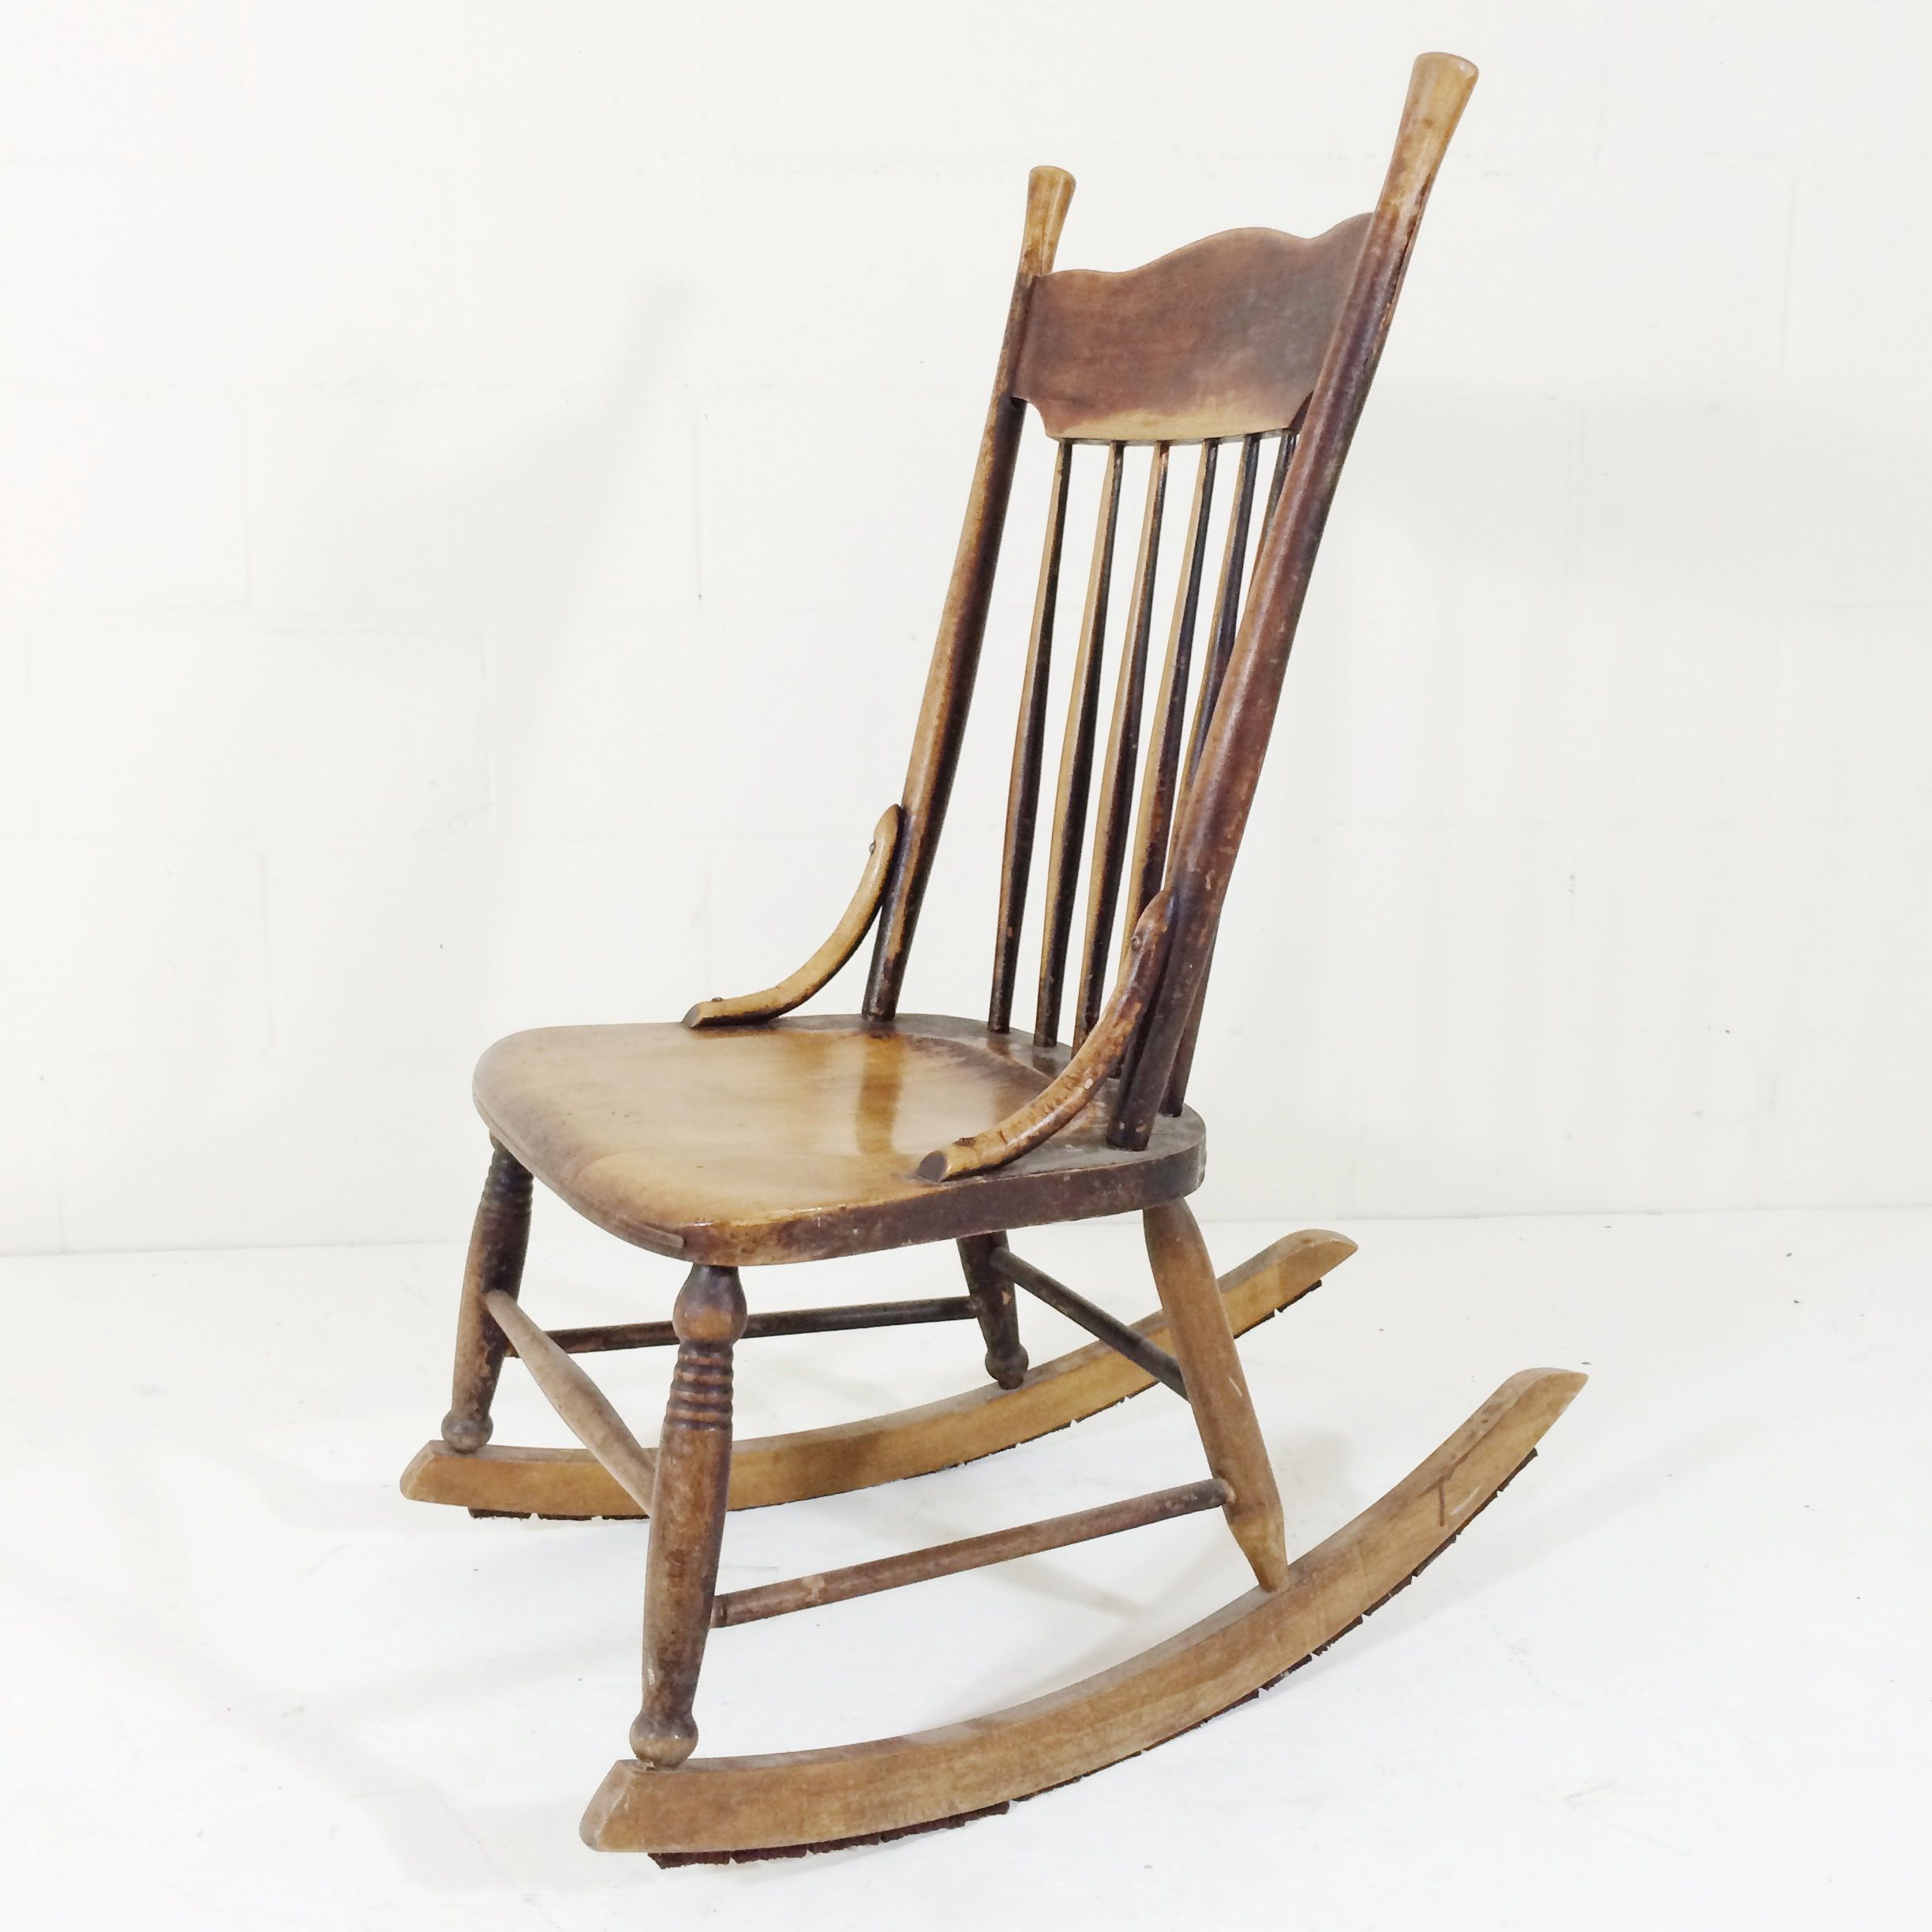 Beautifully Worn Antique Rocking Chair This Style Is Known As A Nursing Rocker As It Sits Low To The Ground And Has No Arms